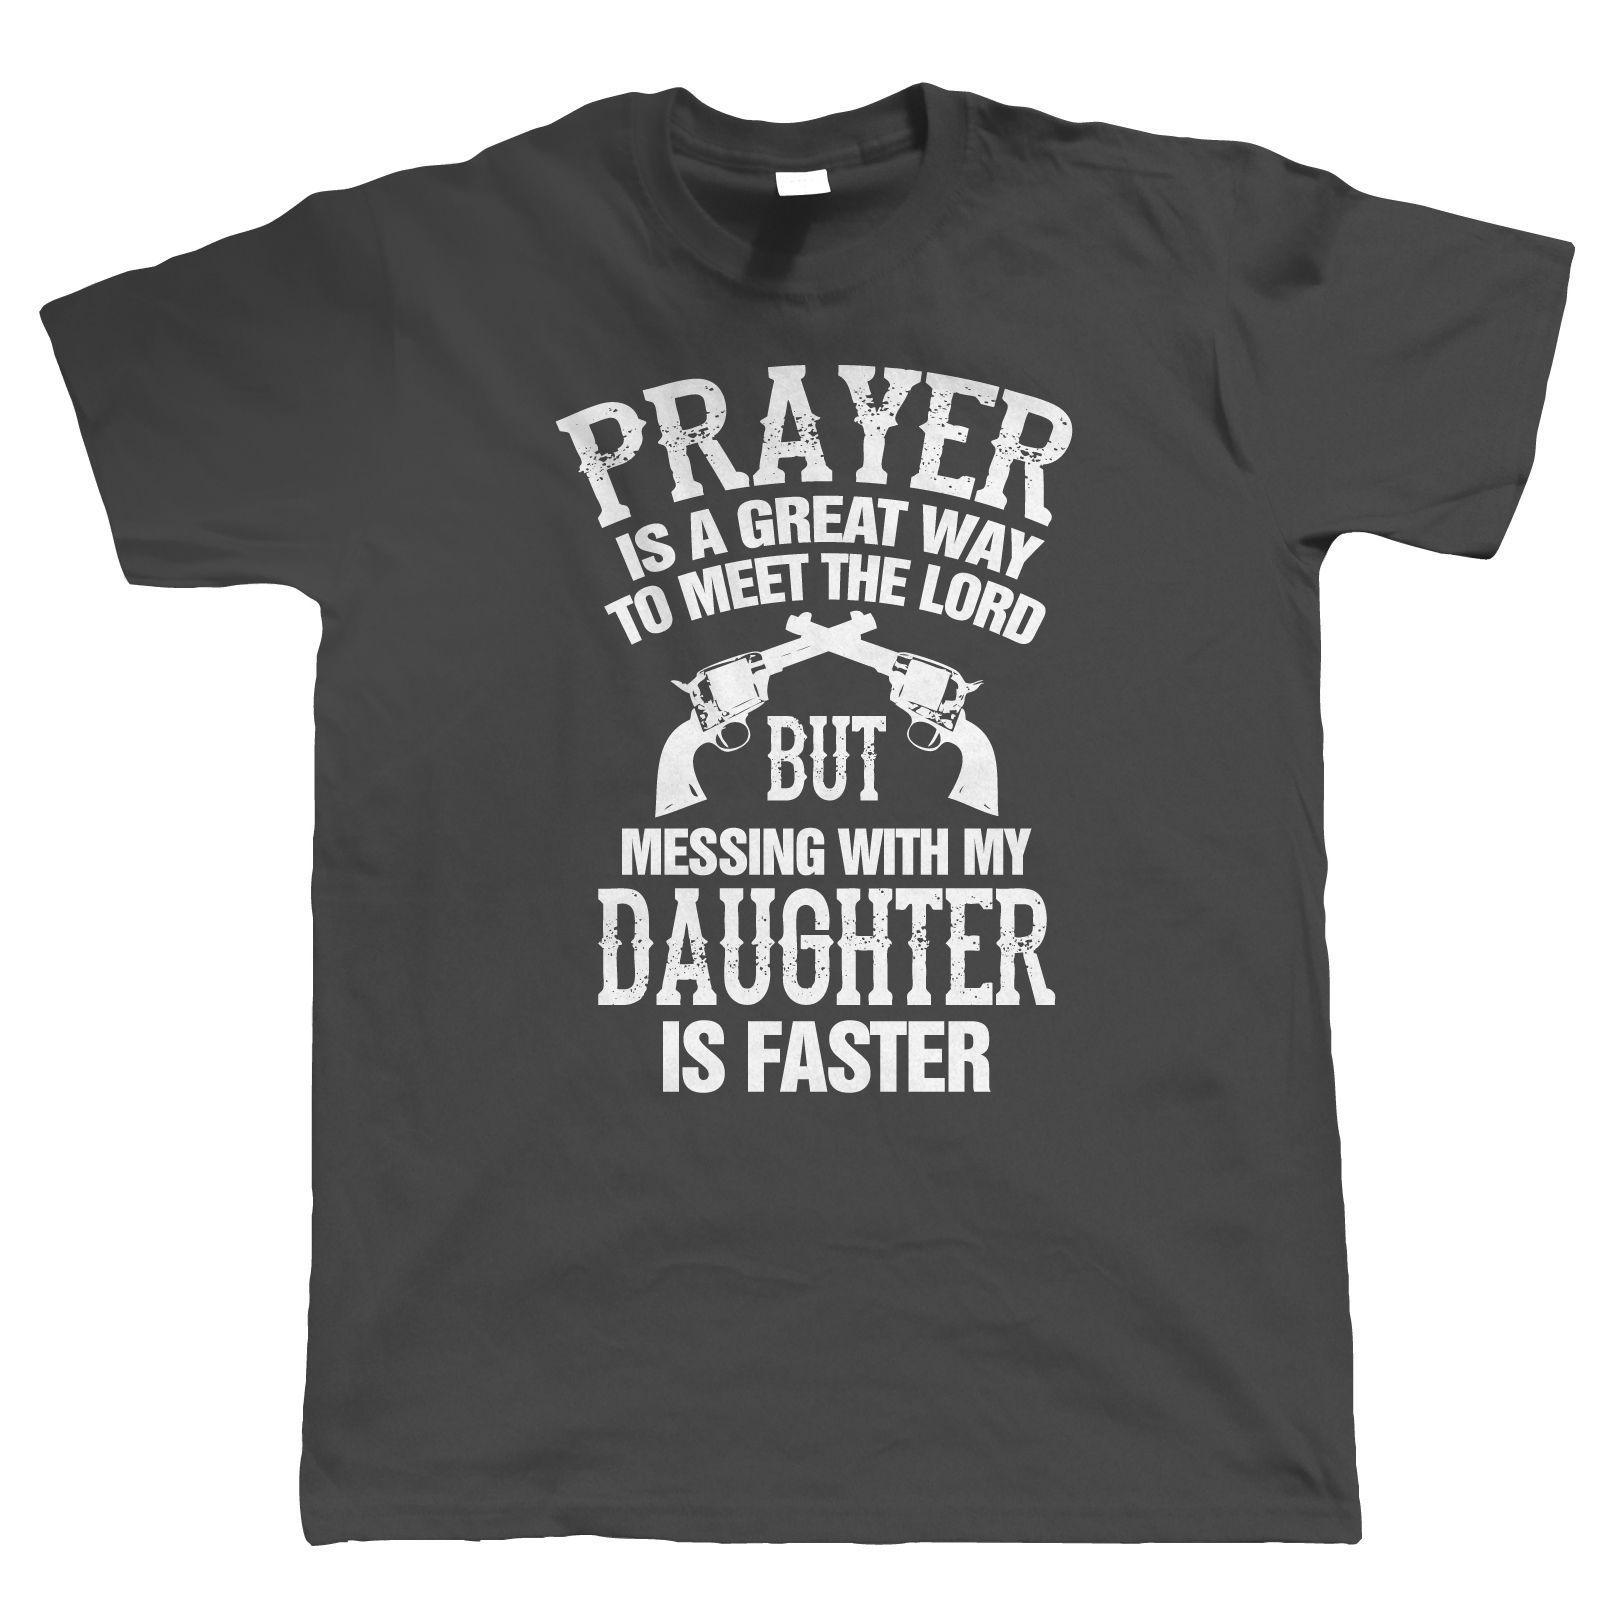 Mess With My Daughter Mens Funny T Shirt Fathers Day Birthday Gift For Dad Online 1315 Piece On Vectorbombs Store